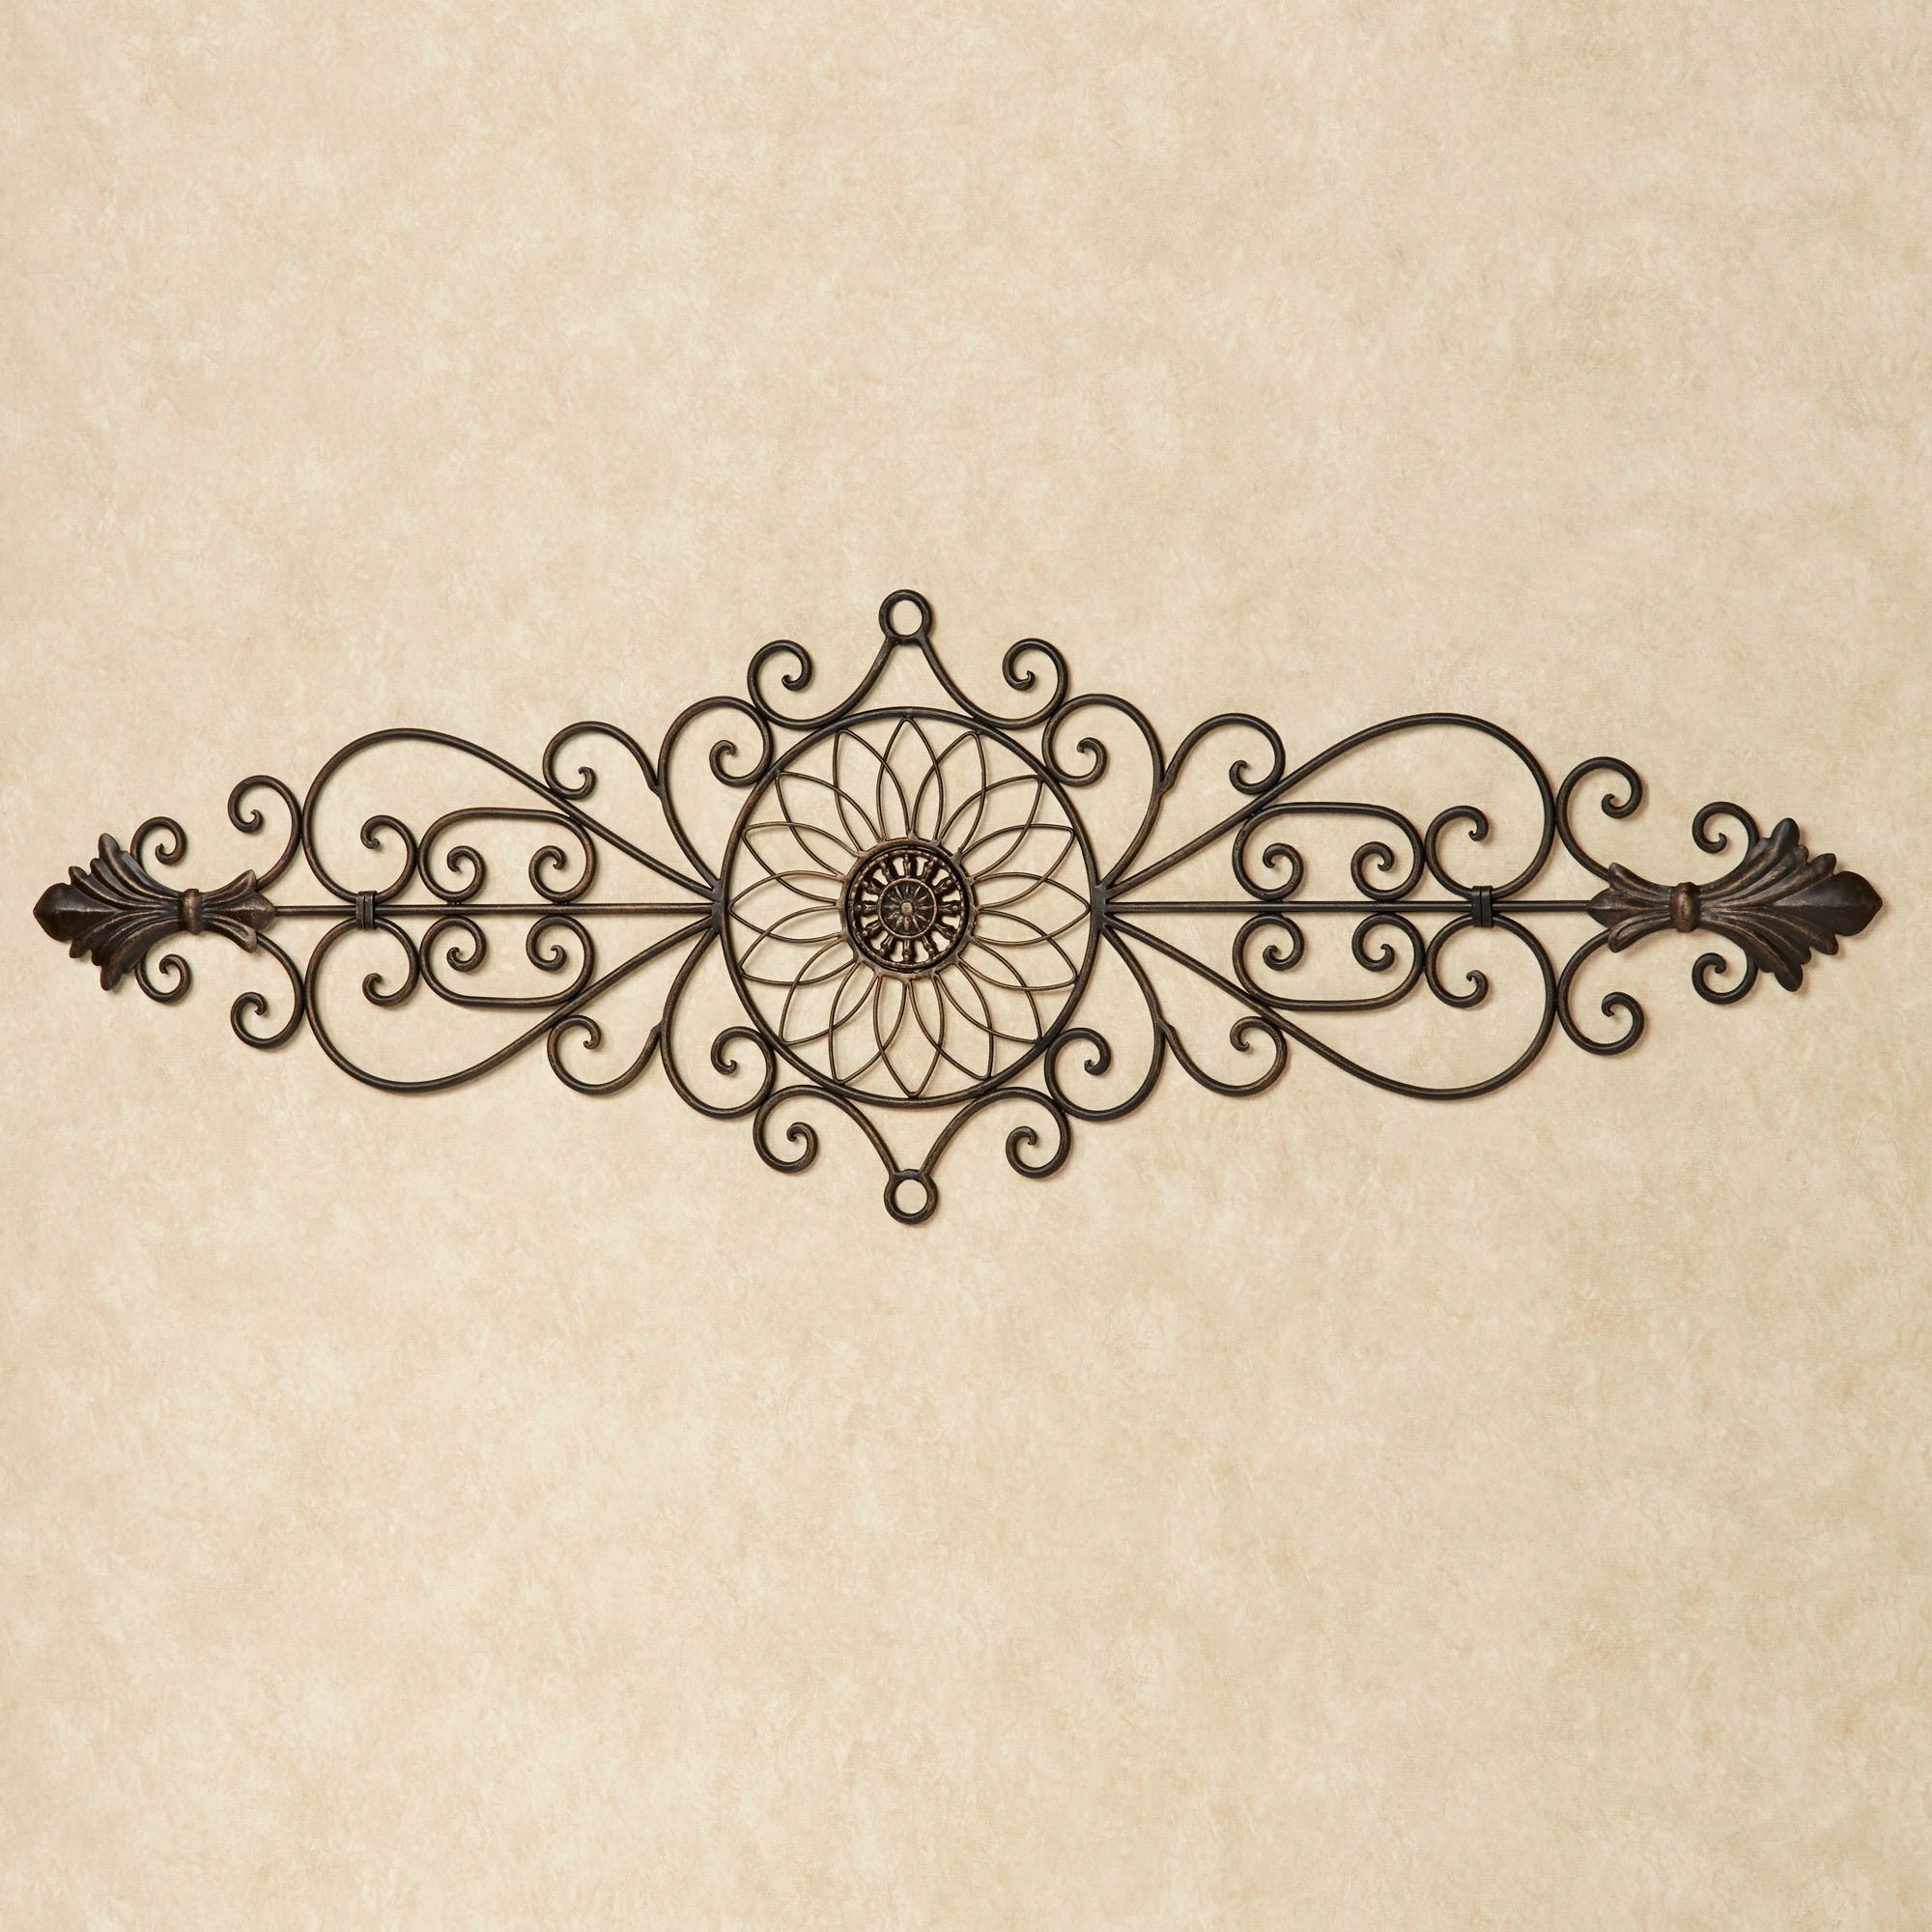 Bedroom : Iron Wall Hangings Wall Plate Outdoor Wall Hangings Regarding Latest Italian Iron Wall Art (View 3 of 15)